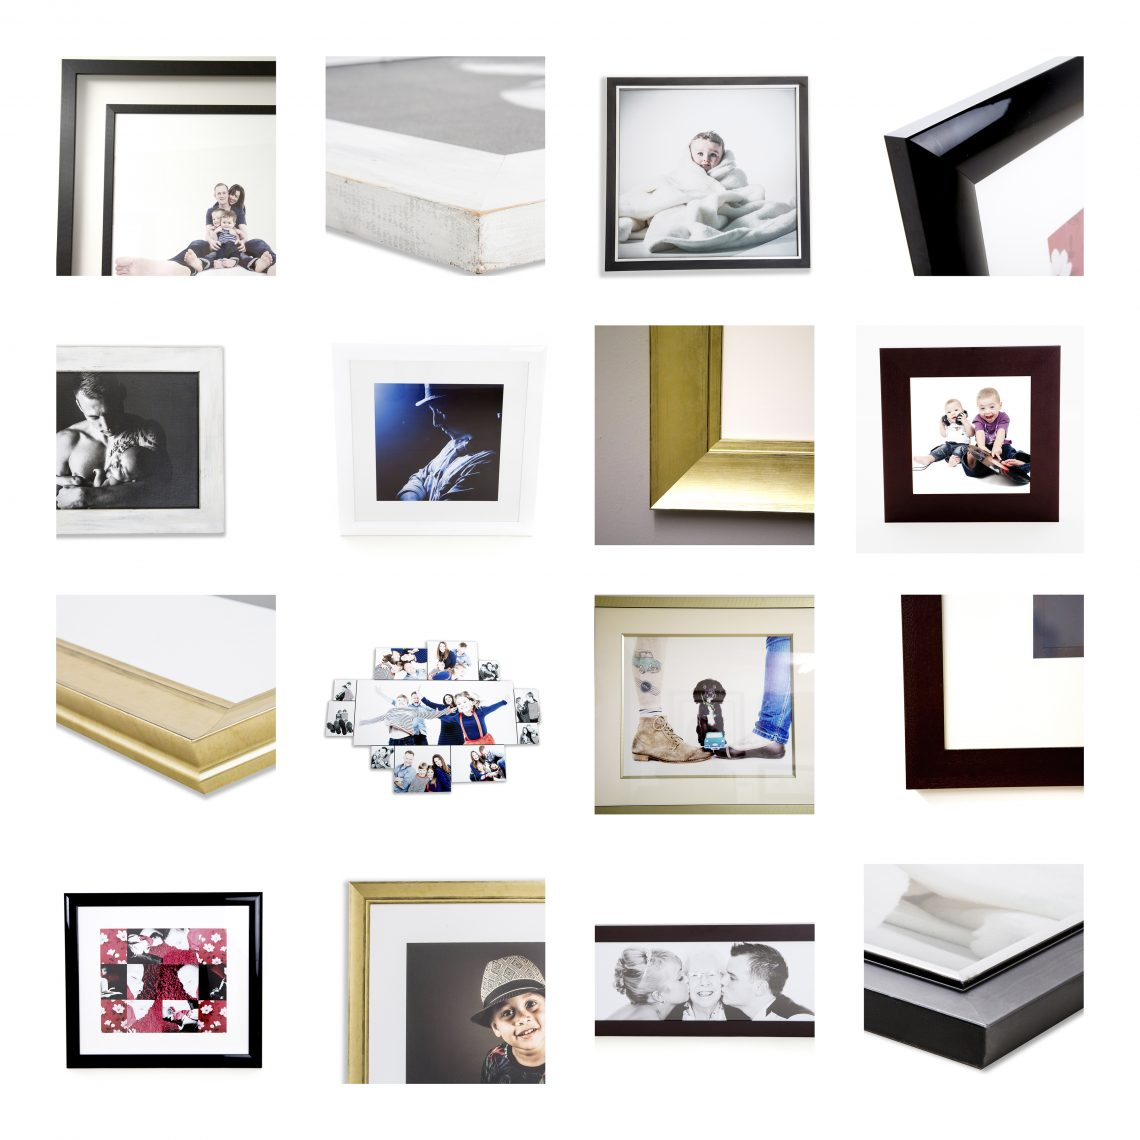 wall art, wall displays, frames